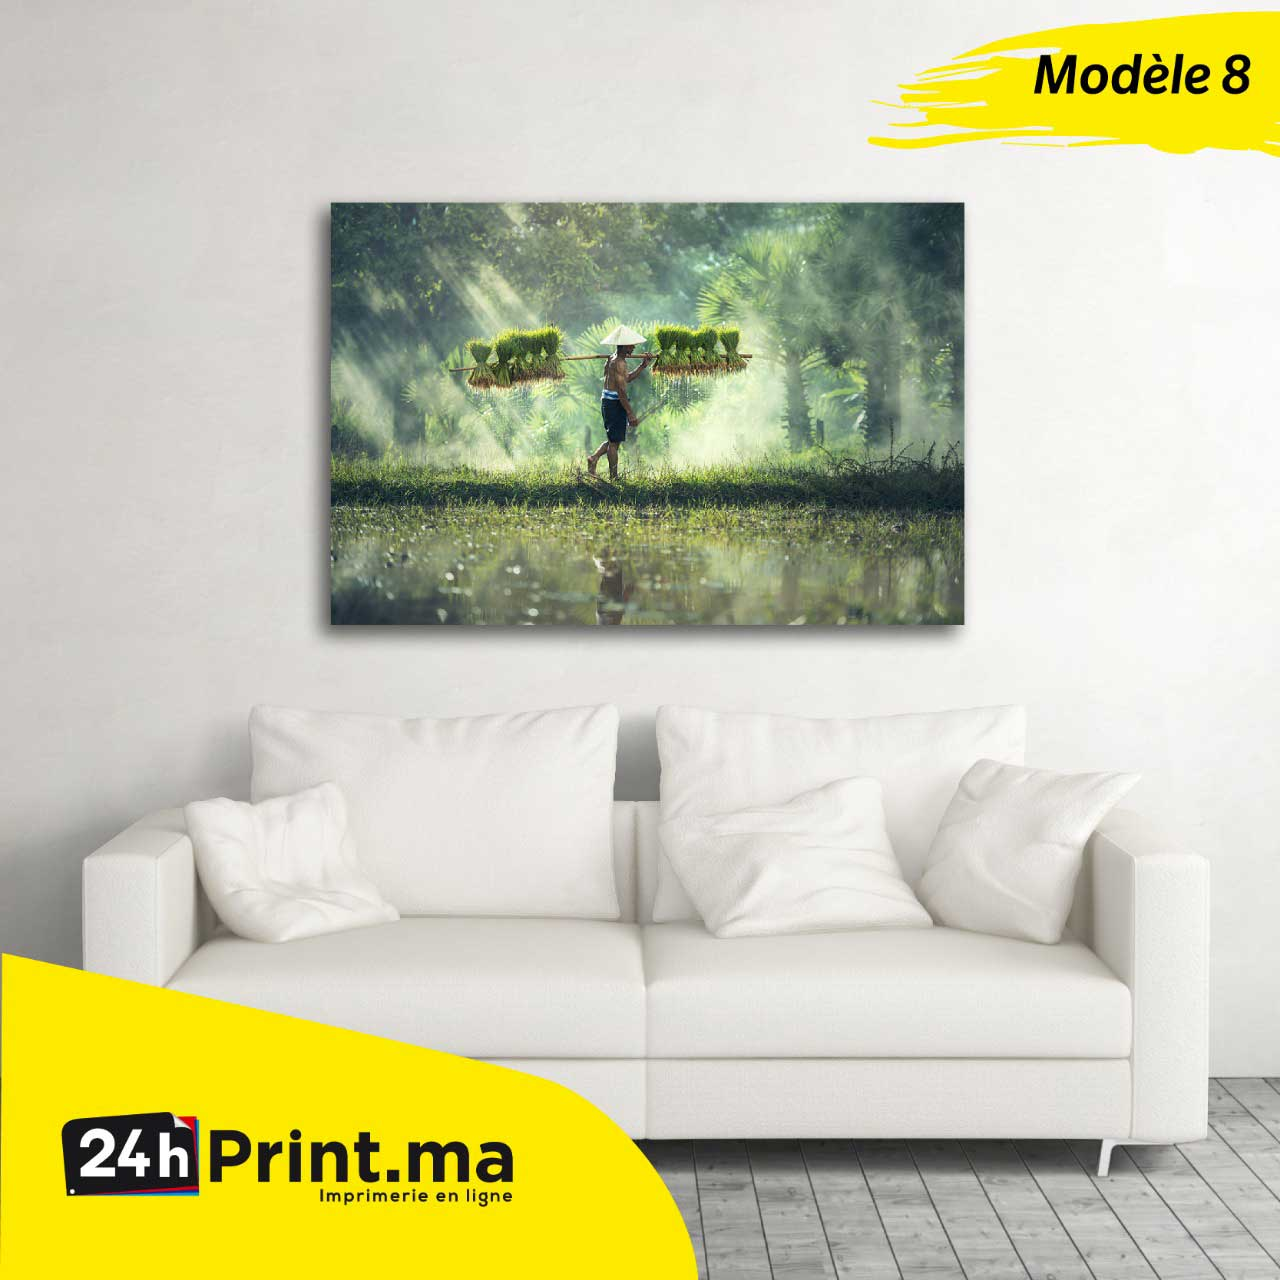 https://www.24hprint.ma/images/products_gallery_images/880.jpg